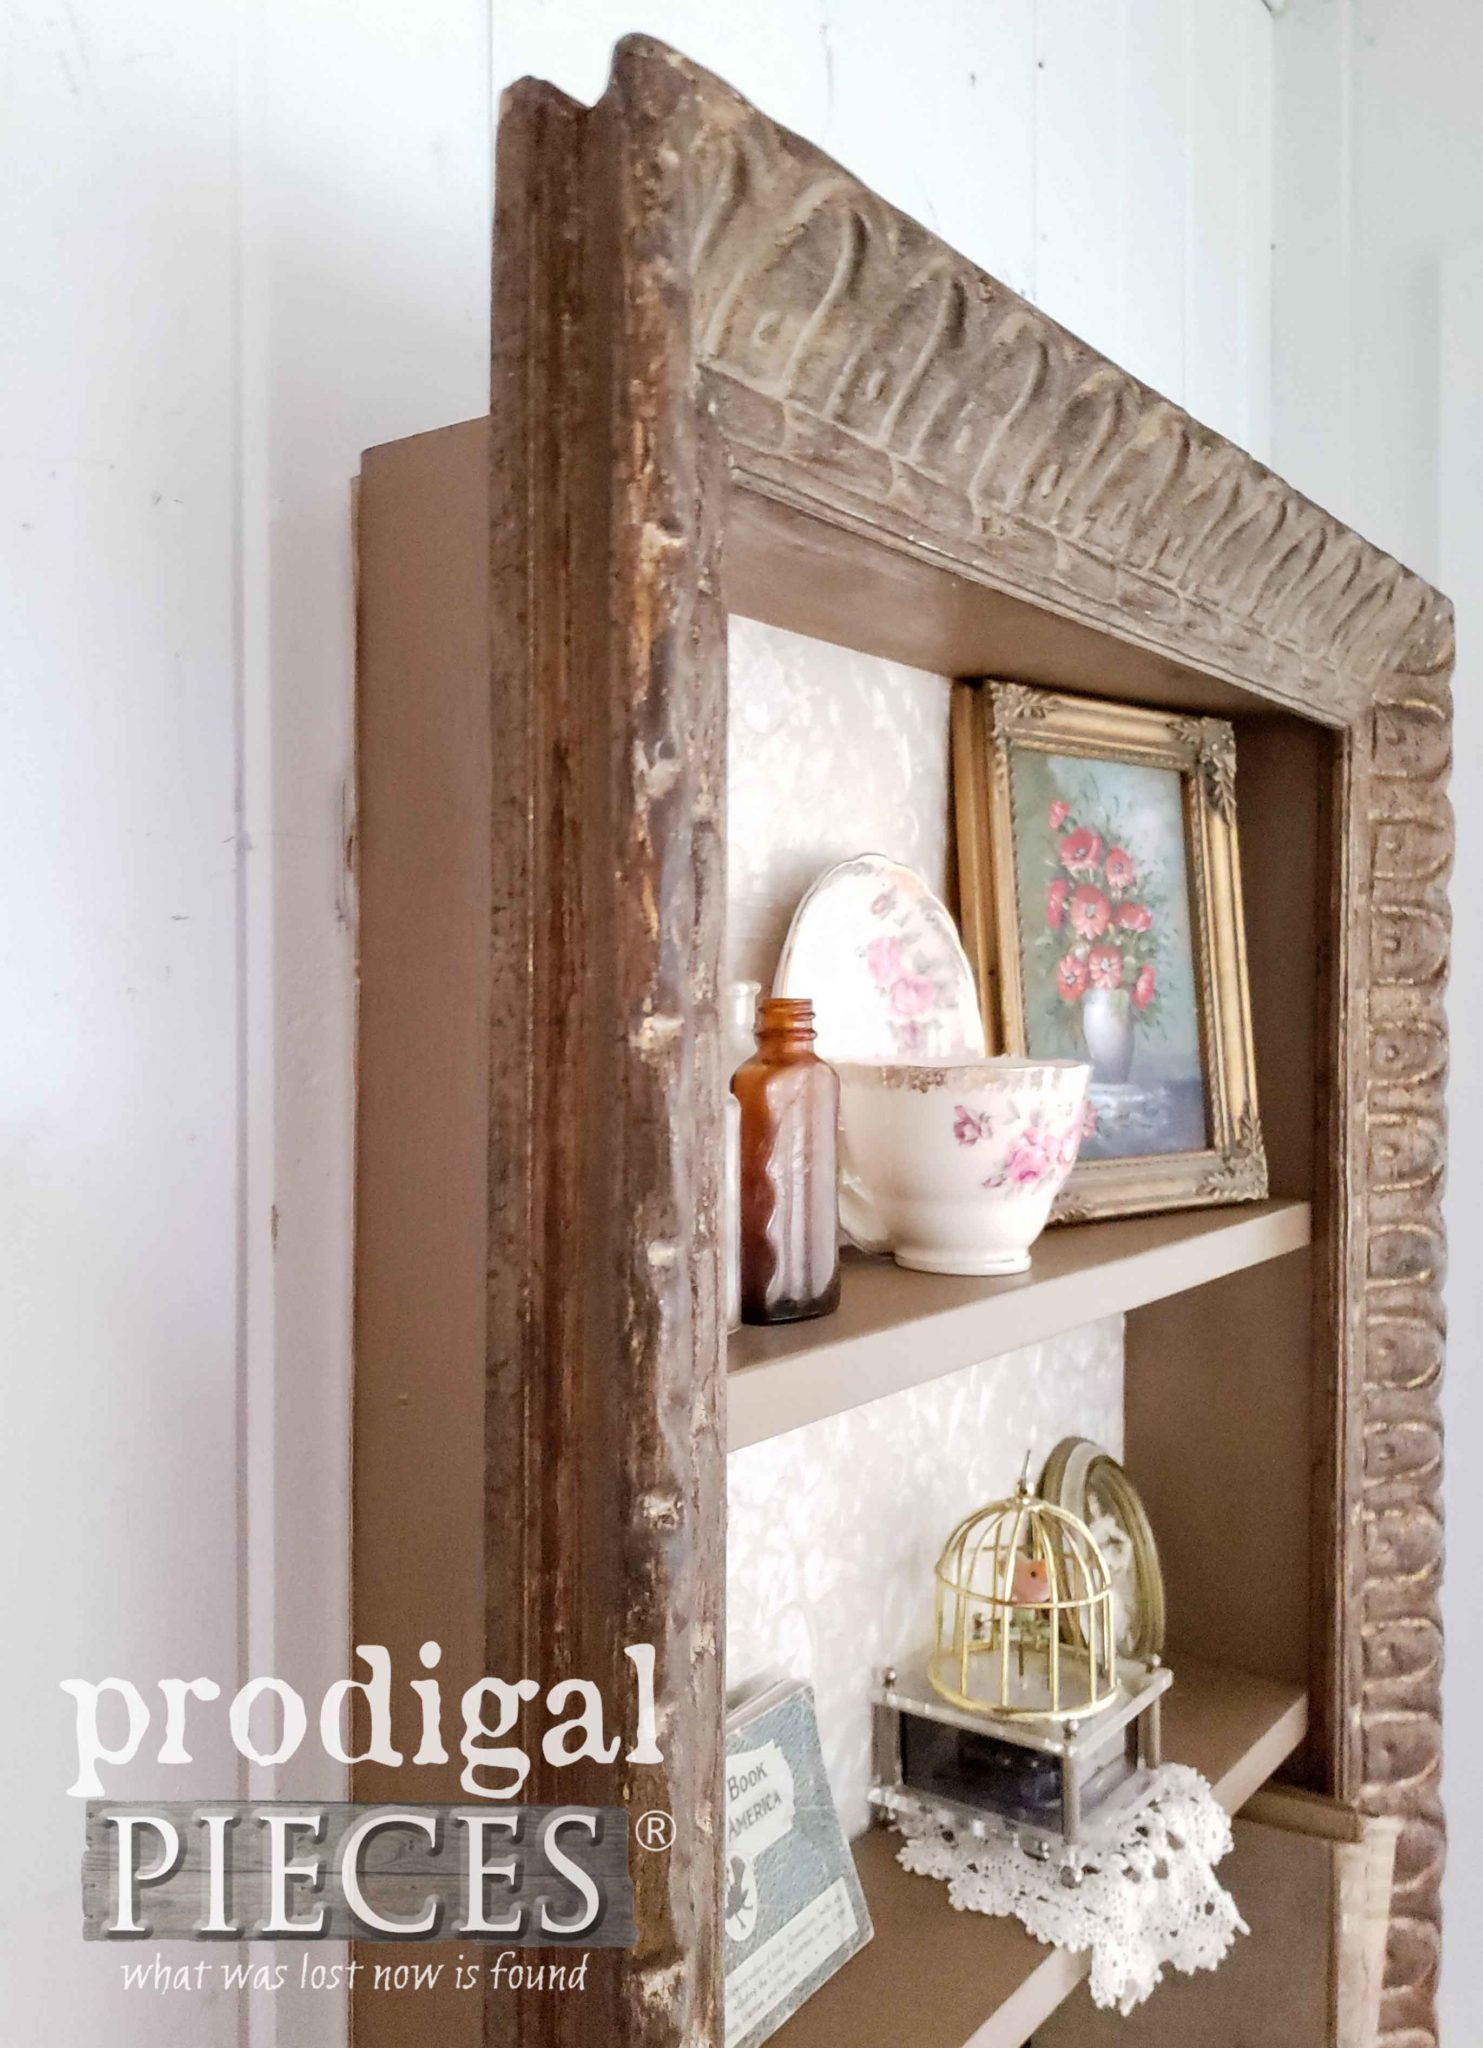 Repurposed Picture Frame Wall Shelf Depth by Prodigal Pieces | prodigalpieces.com